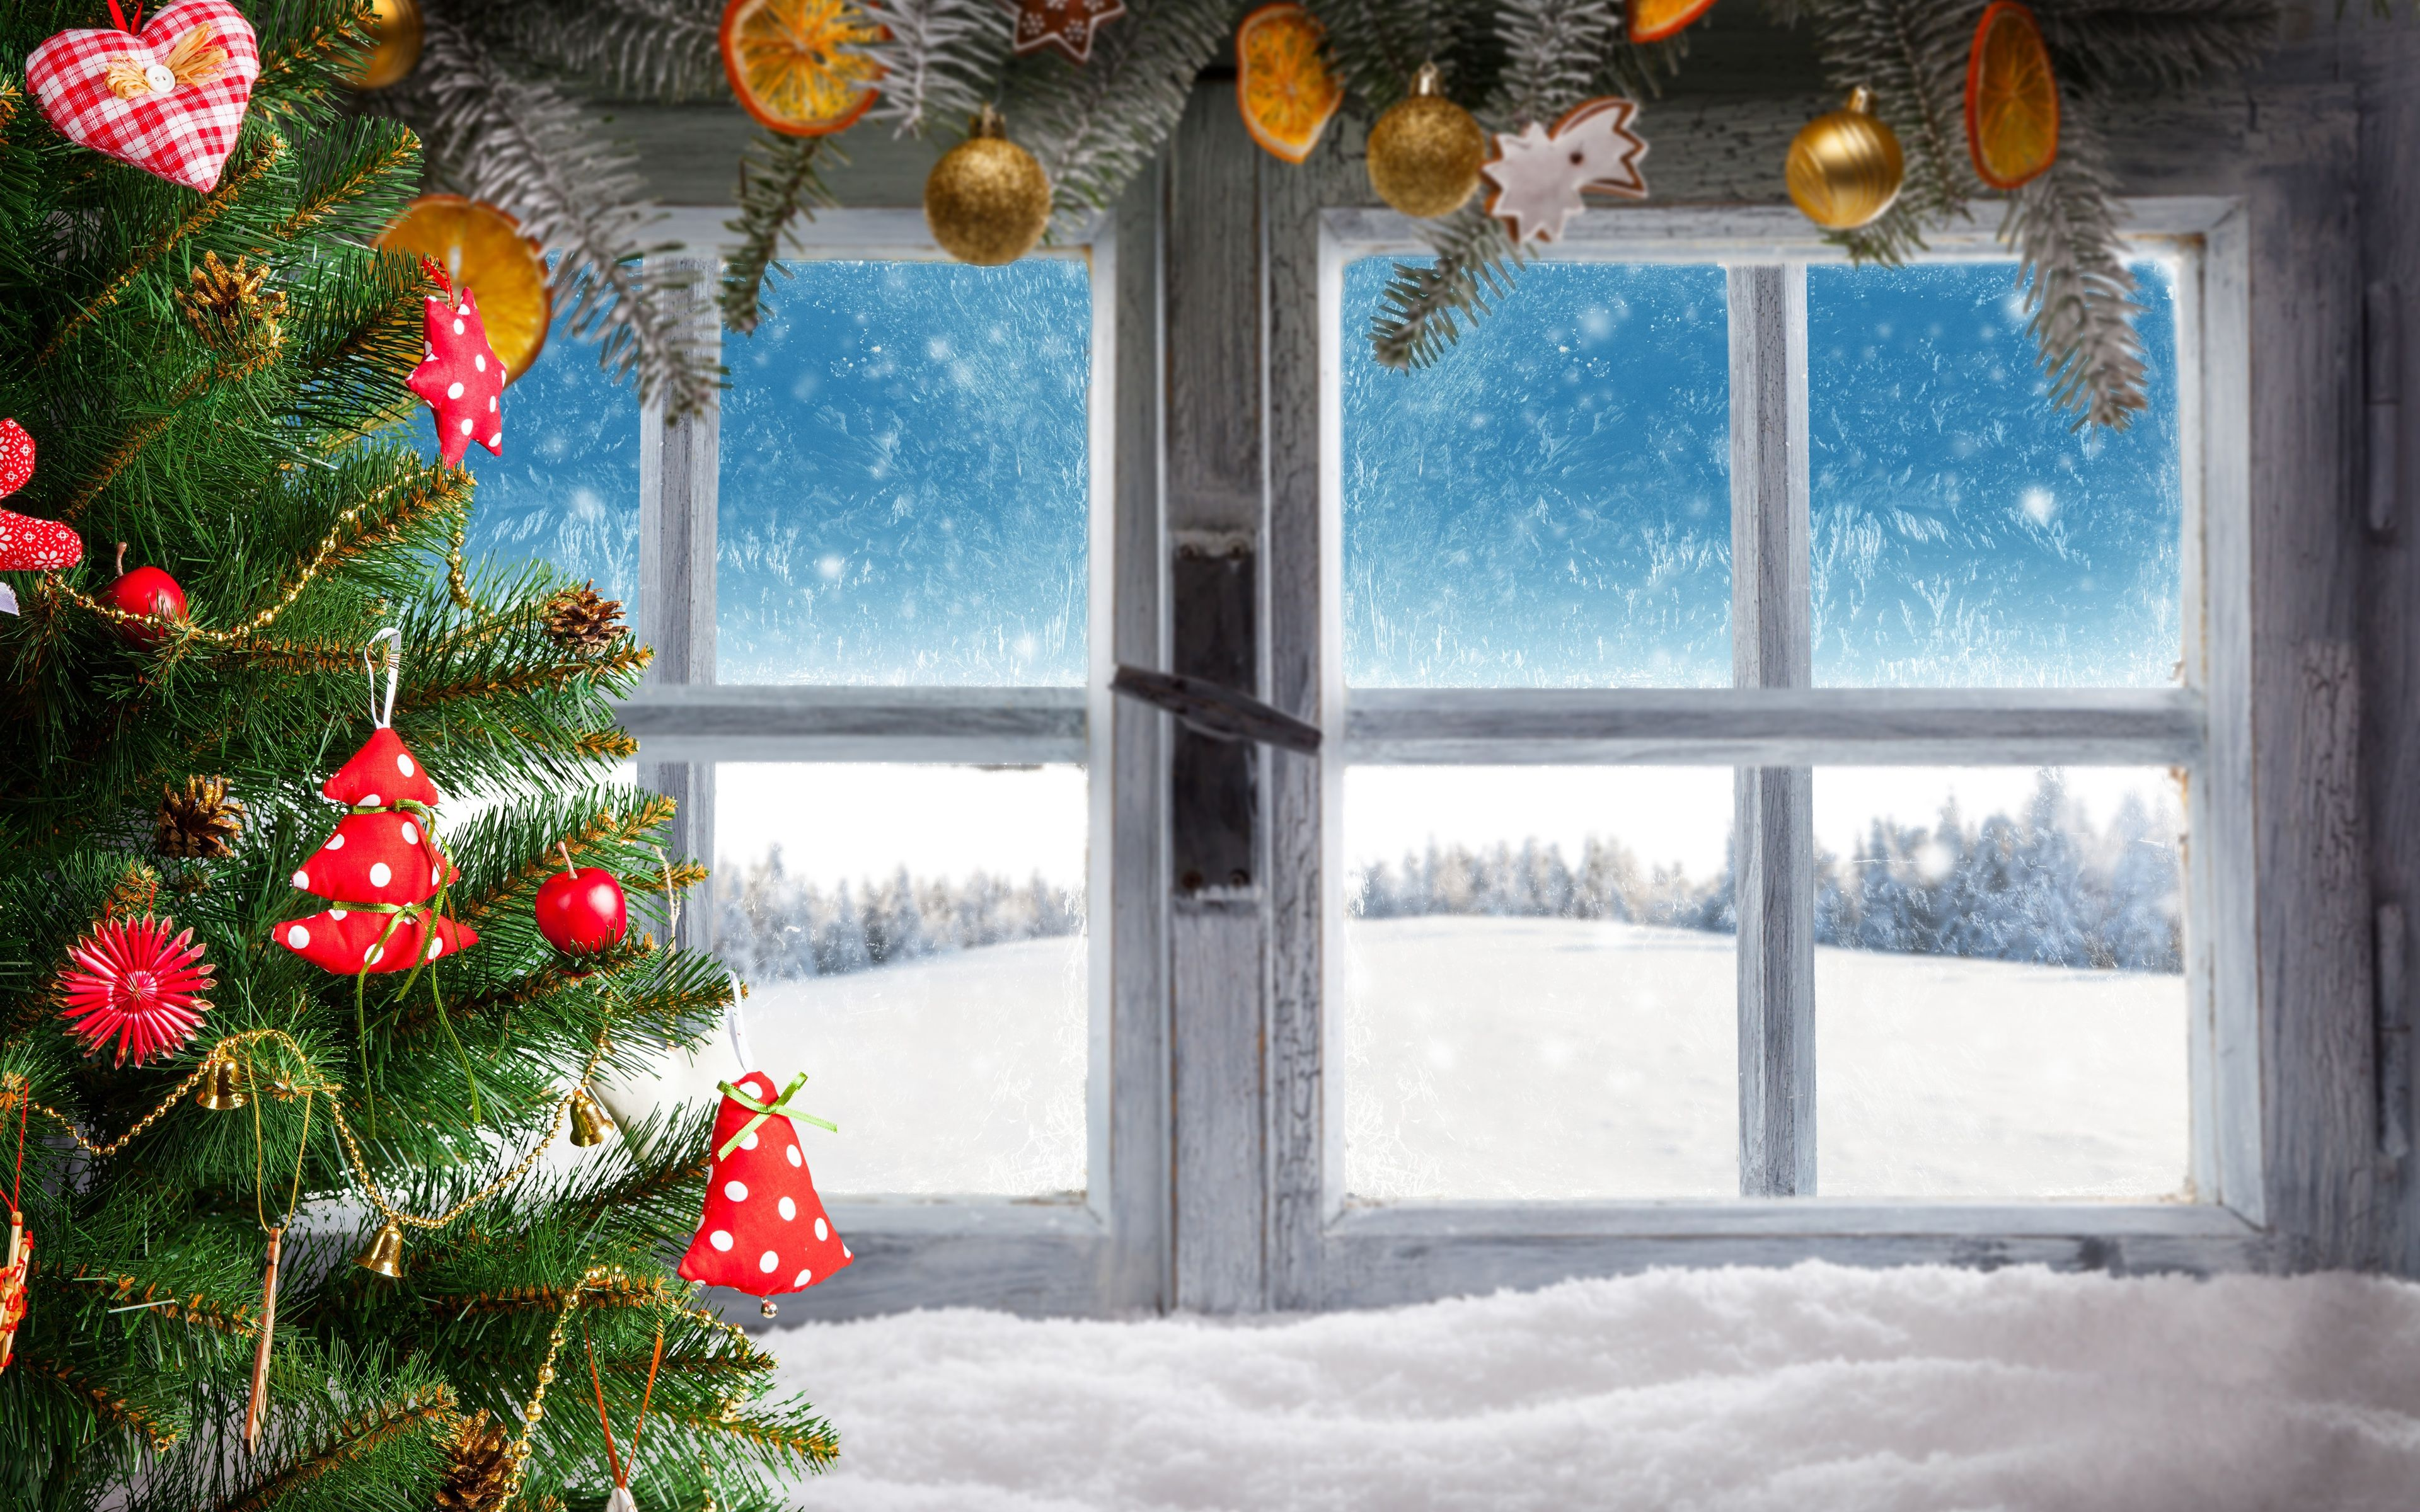 Customer Order Online With 10 Off On Vinyl Windows Online Order Buy Windows At Wholesale P Christmas Tree Photography Christmas Backdrops Christmas Wallpaper